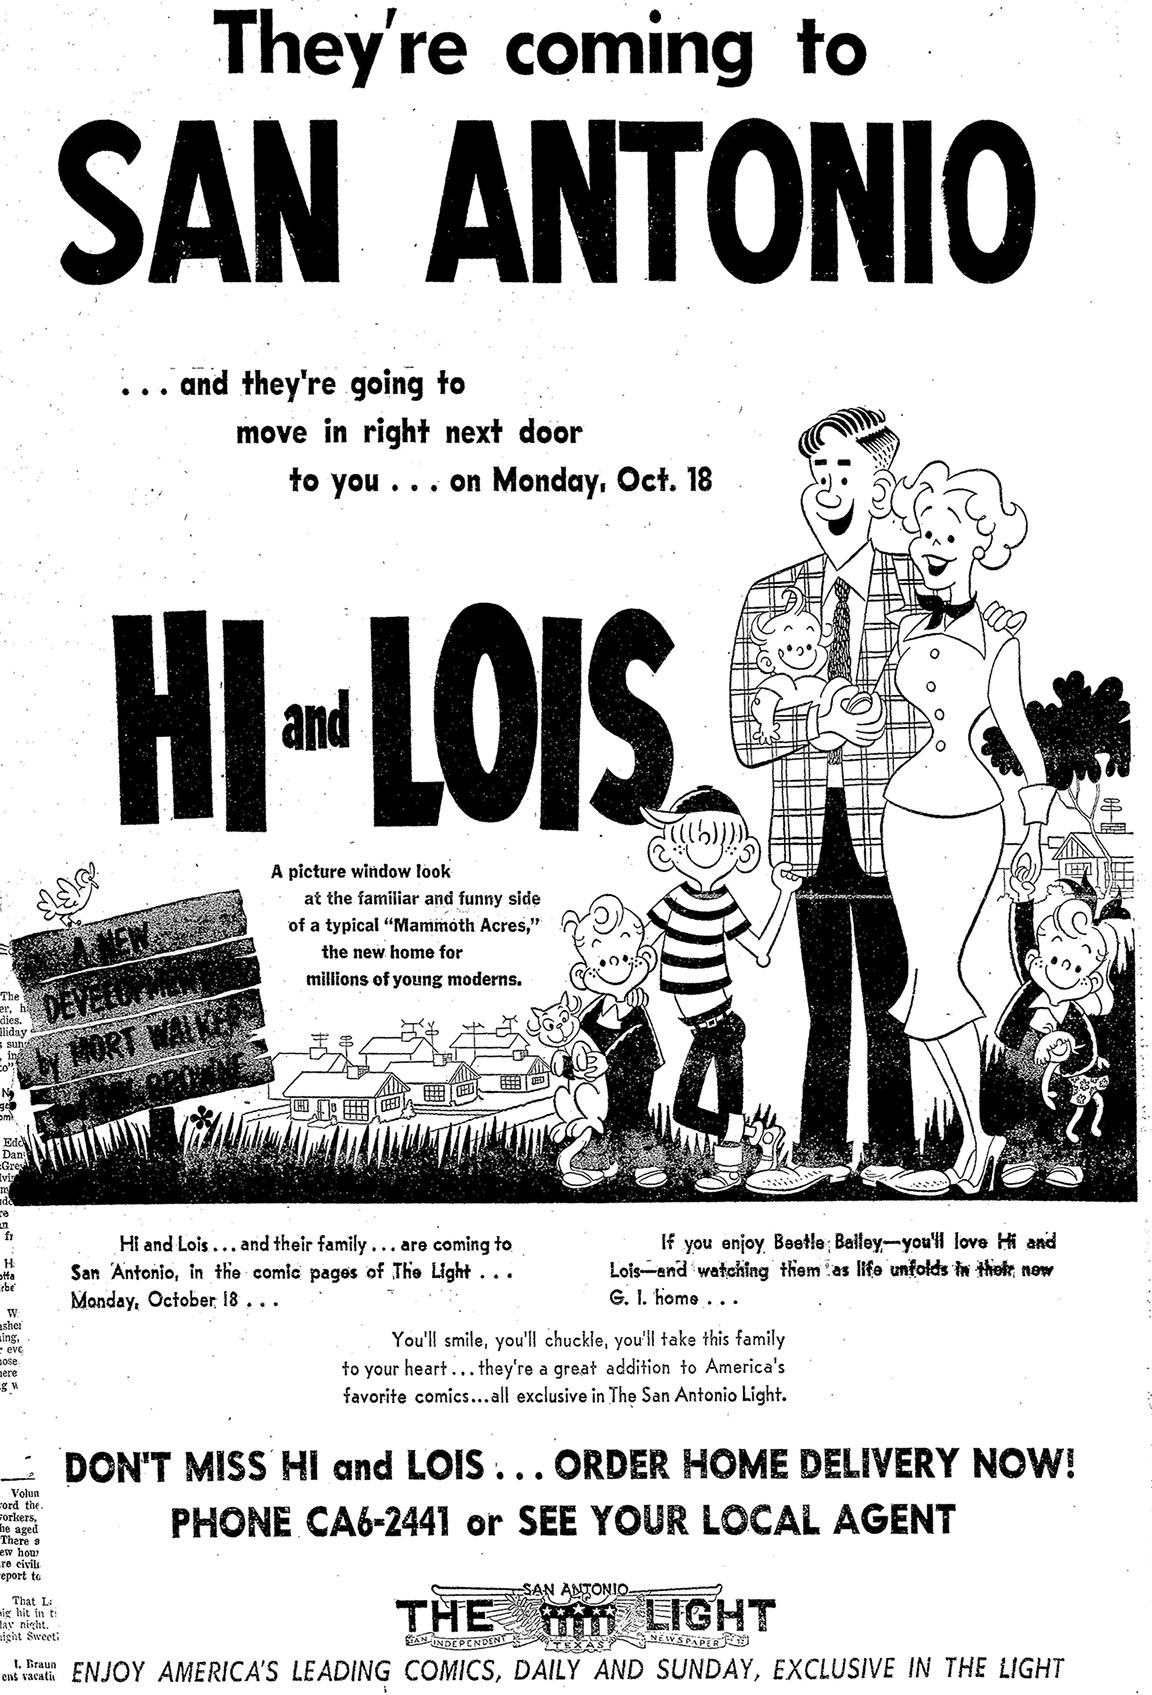 hi-and-lois-ad-full-page-oct-15-1954cropped.jpg